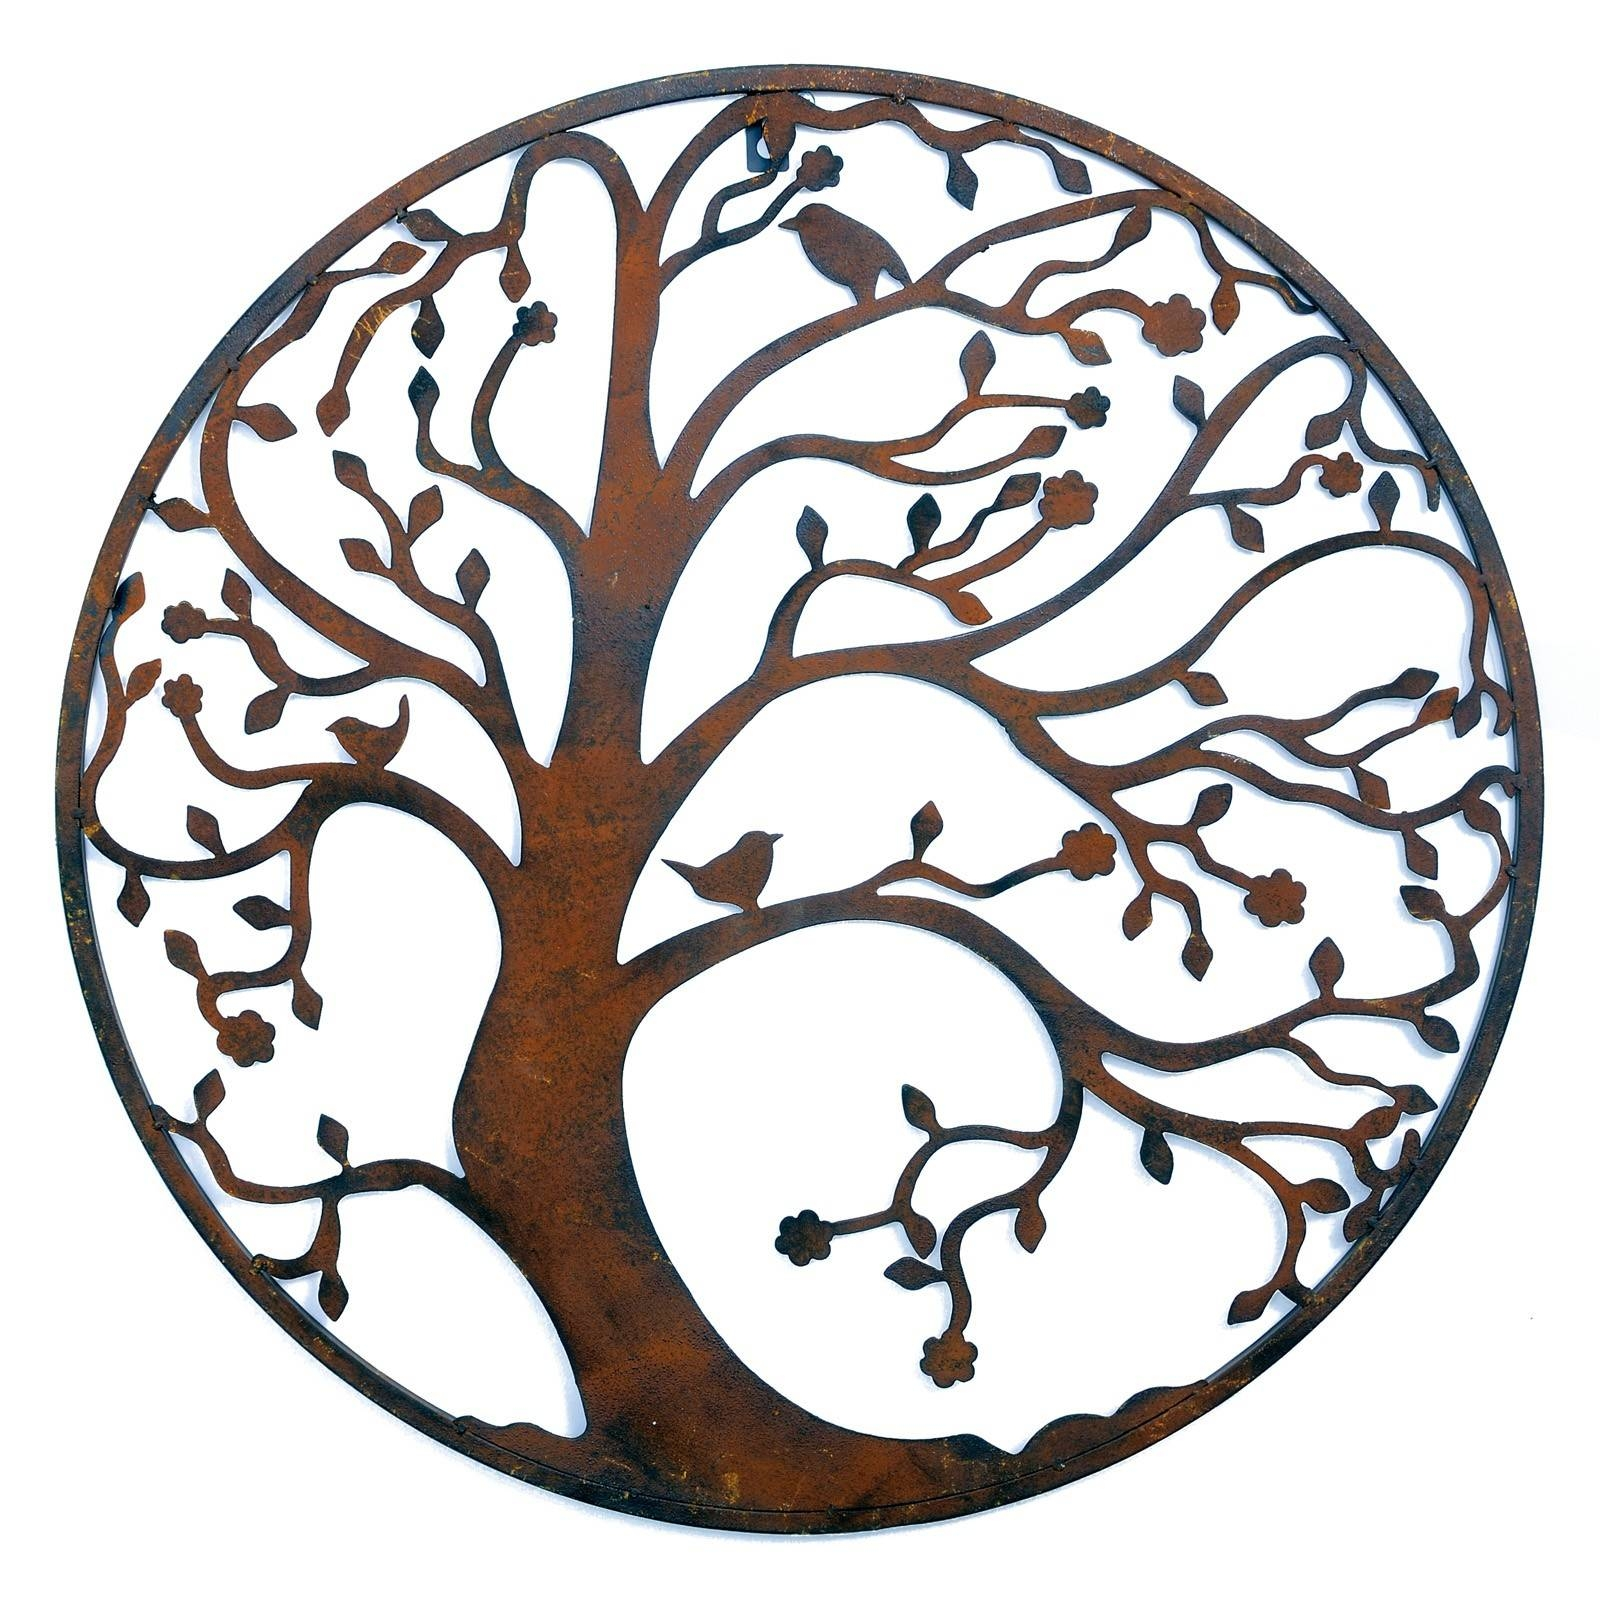 Wall Art Designs: Rusted Classic Design Tree Leaf Branch Birds In Most Popular Circular Metal Wall Art (View 9 of 20)